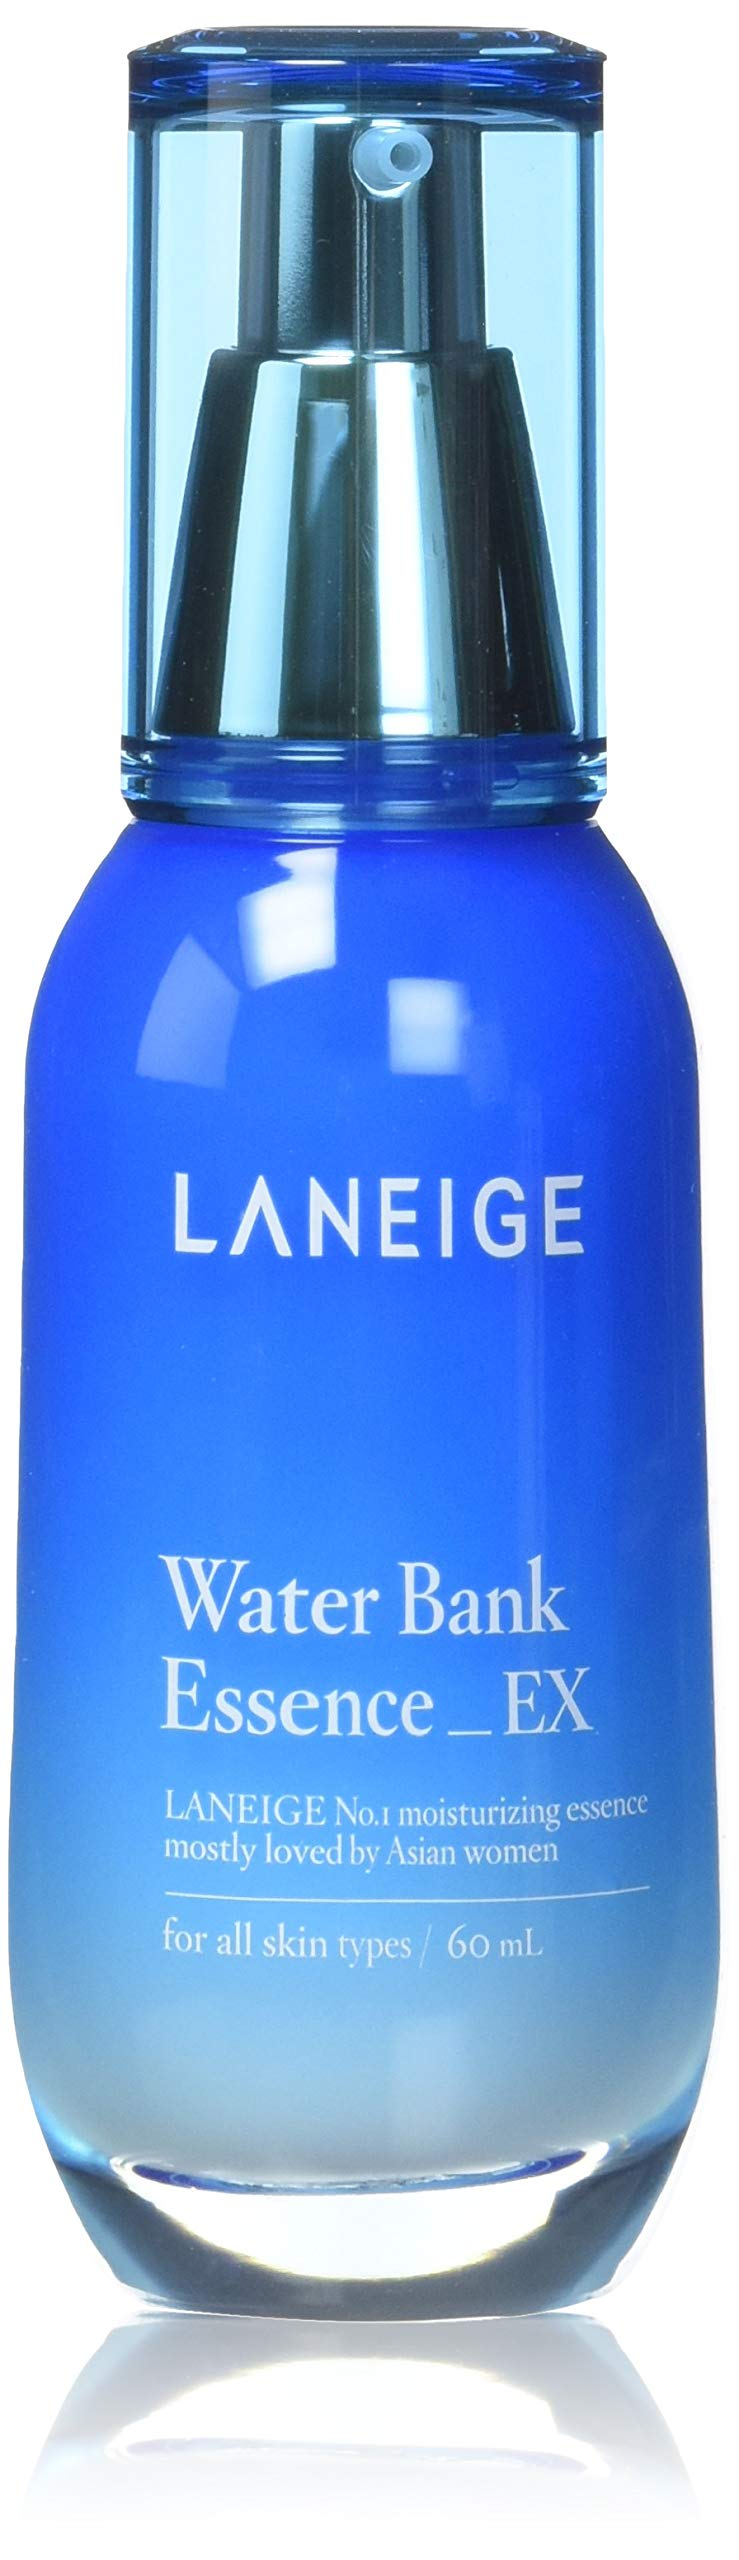 Laneige Water Bank Essence_EX for Smooth and Clear Skin Texture, 2.02 Ounce